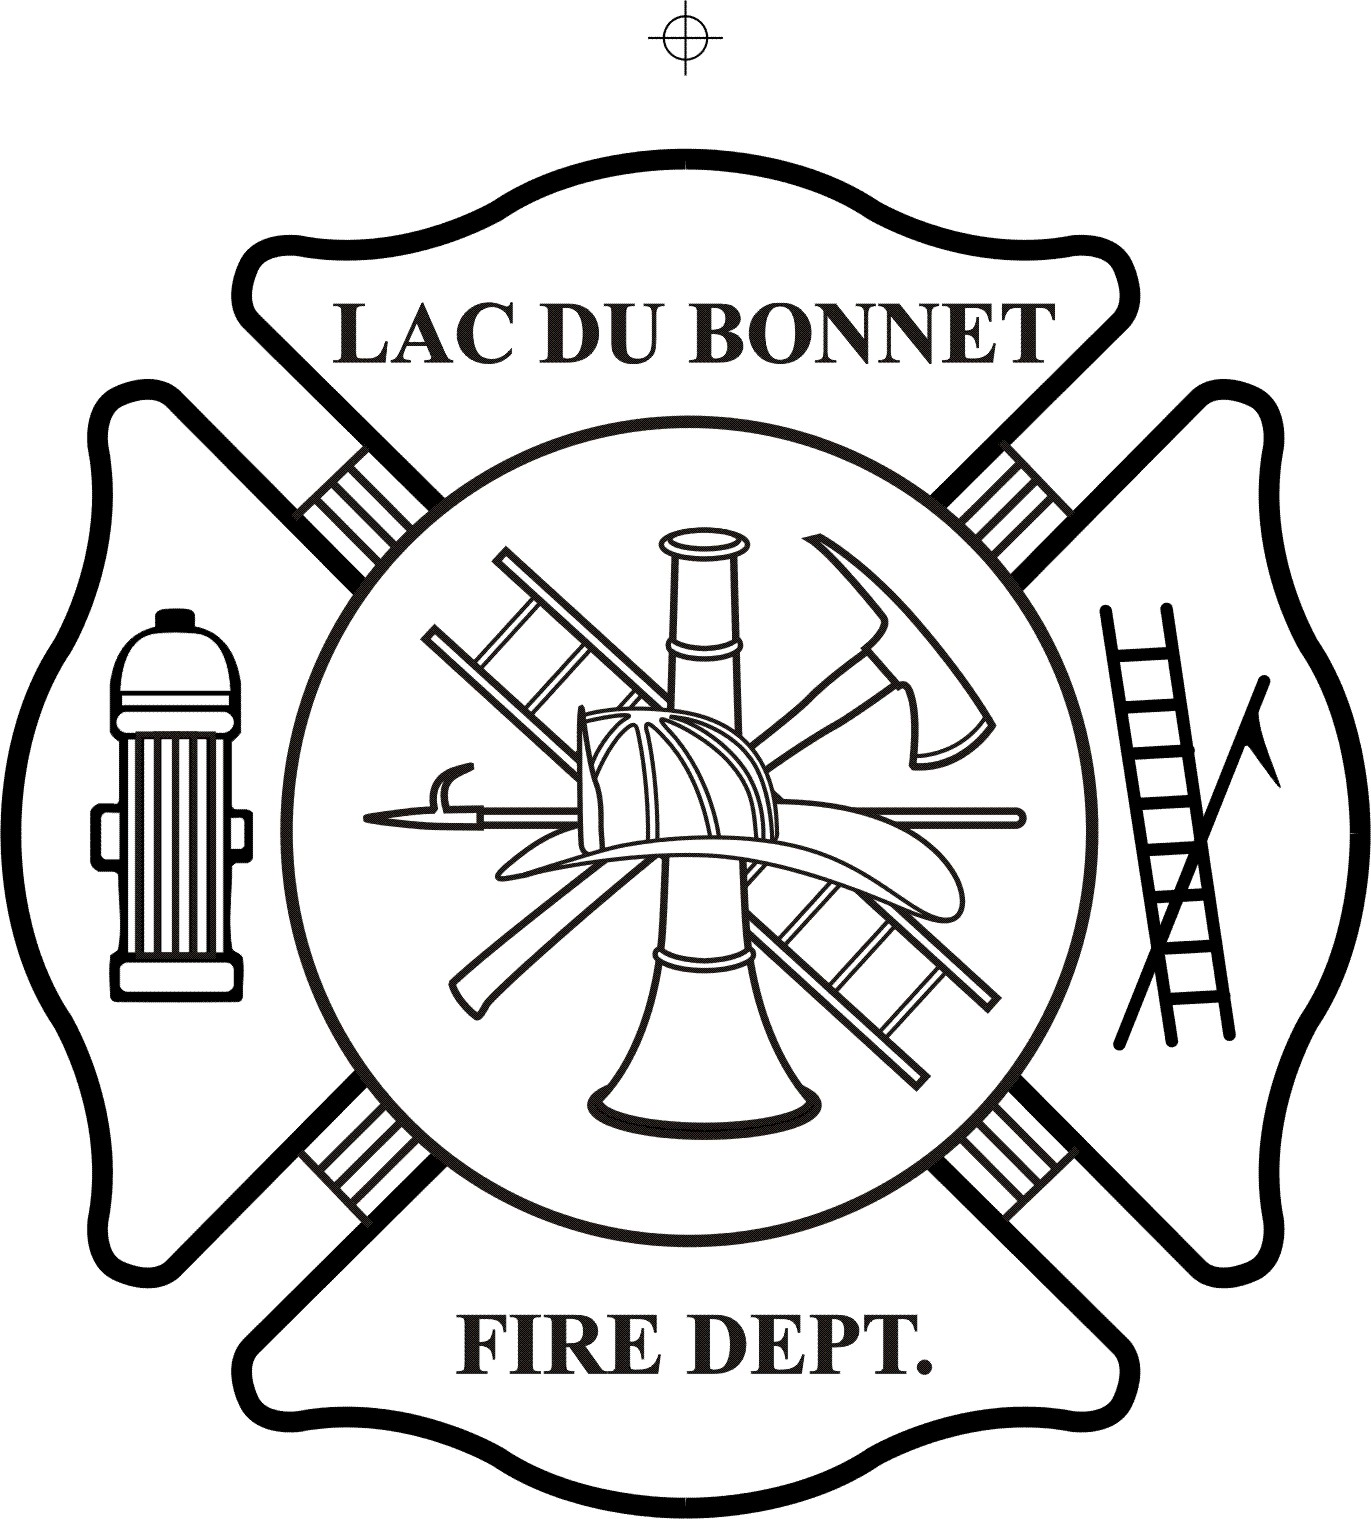 Firefighter Black And White Fire Department Symbols Clip